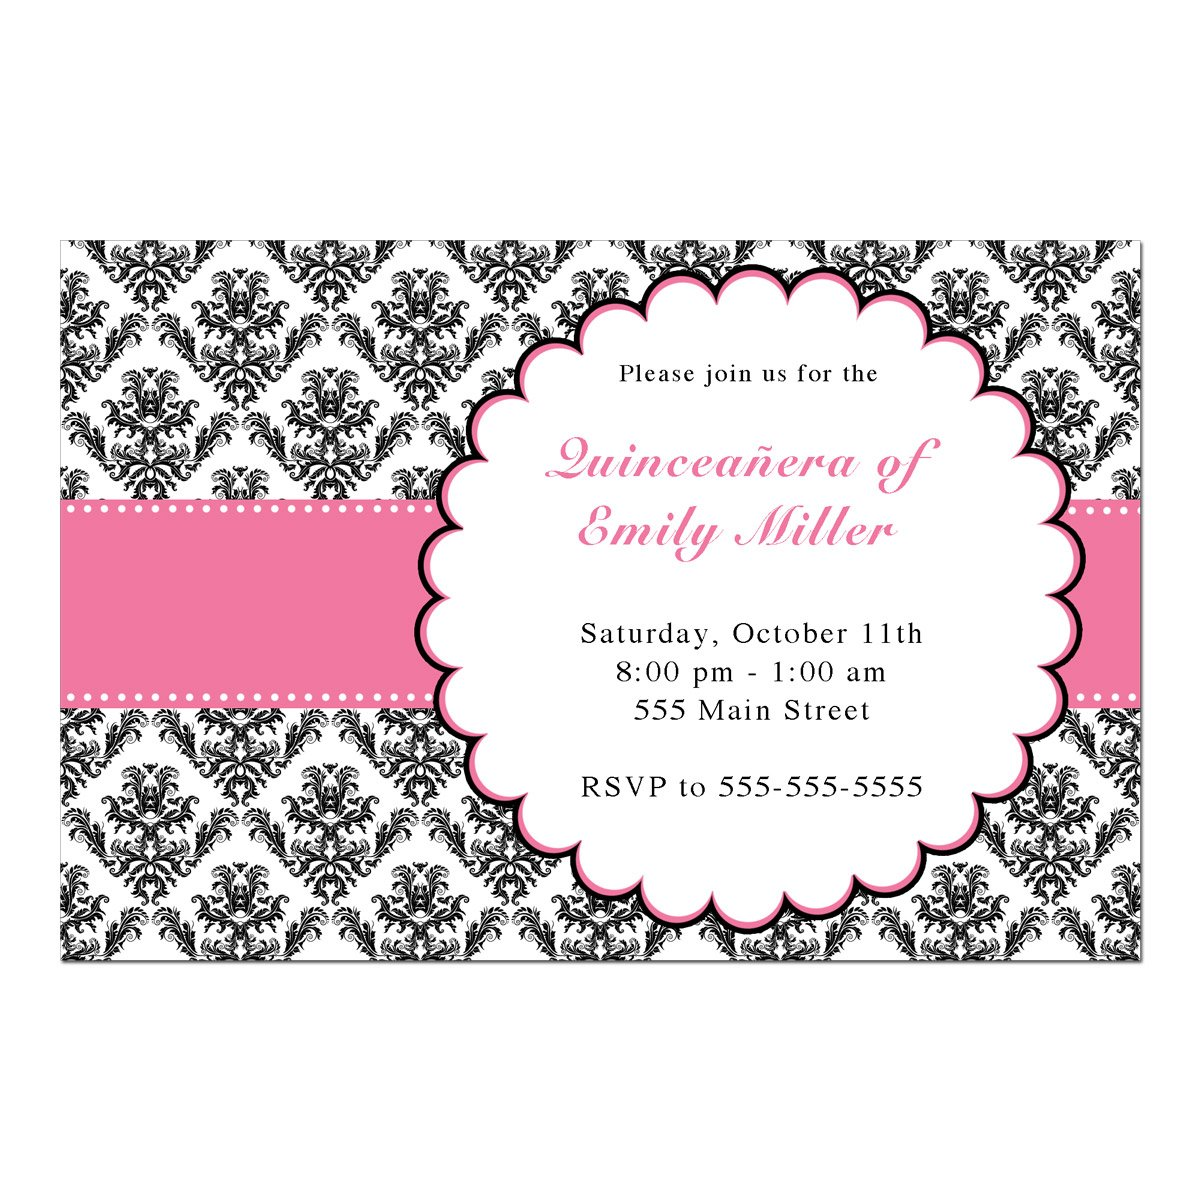 50 Invitations Sweet 16 15 Quinceañera Birthday Party Personalized Cards Blue Confetti Dress + 50 White Envelopes